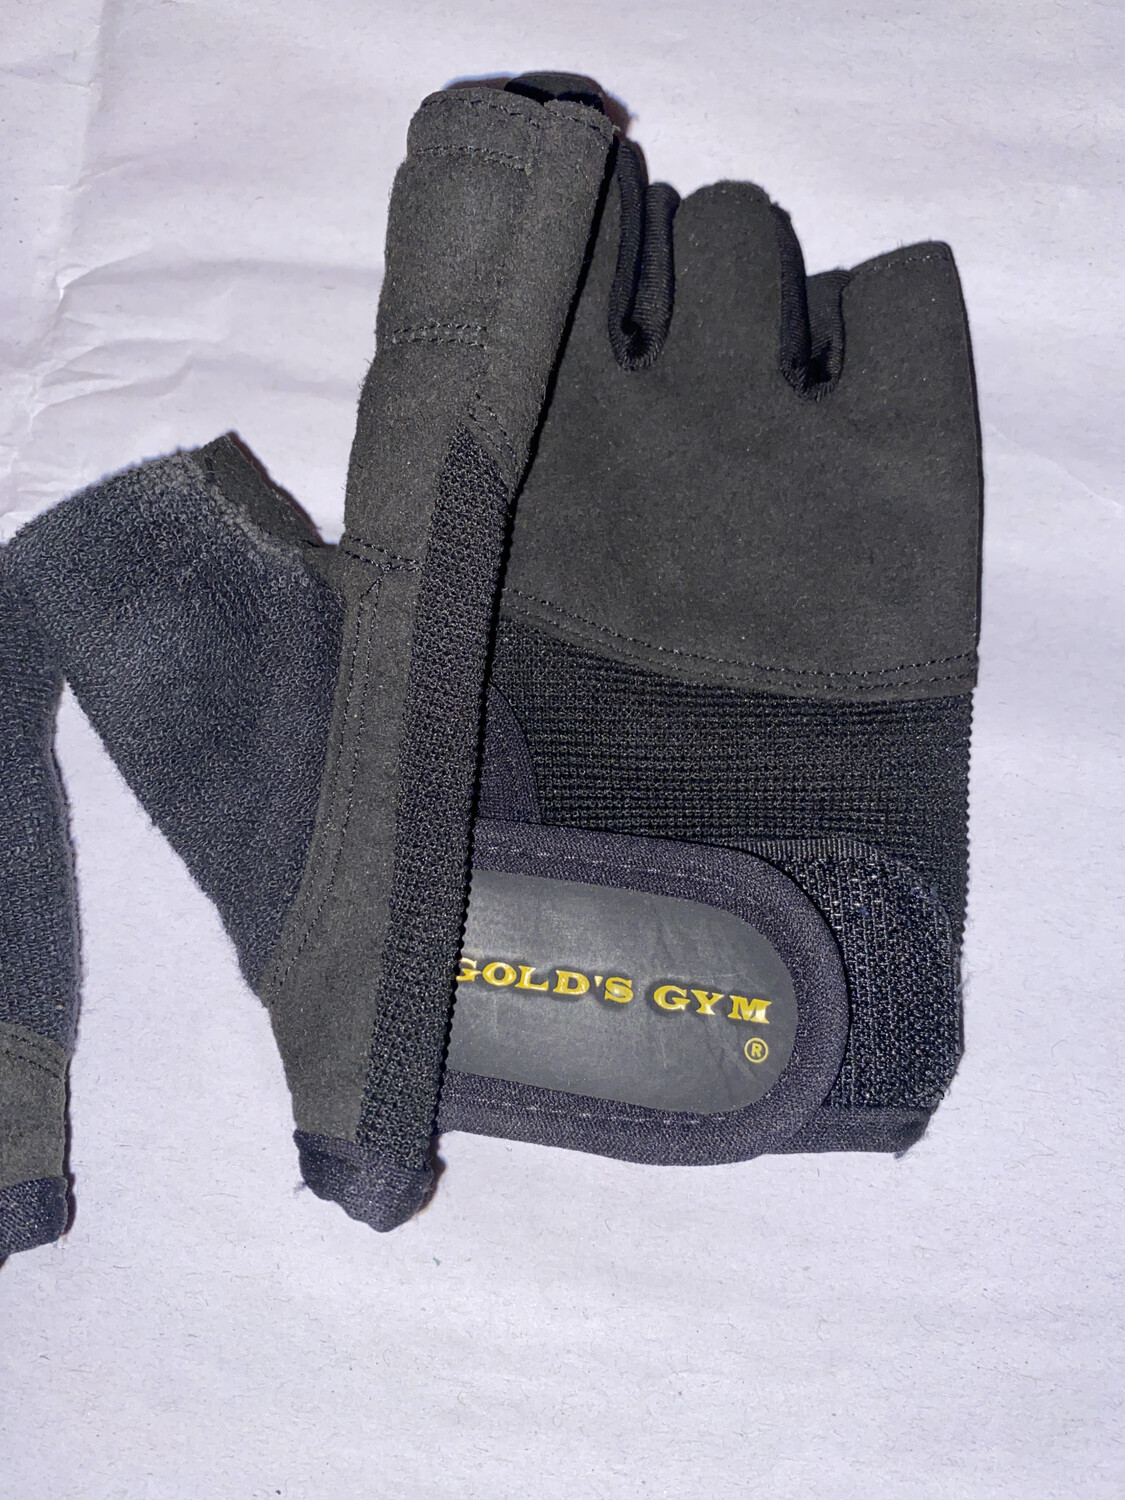 GOLDS GYM BLACK WORKOUT GLOVES XS/S